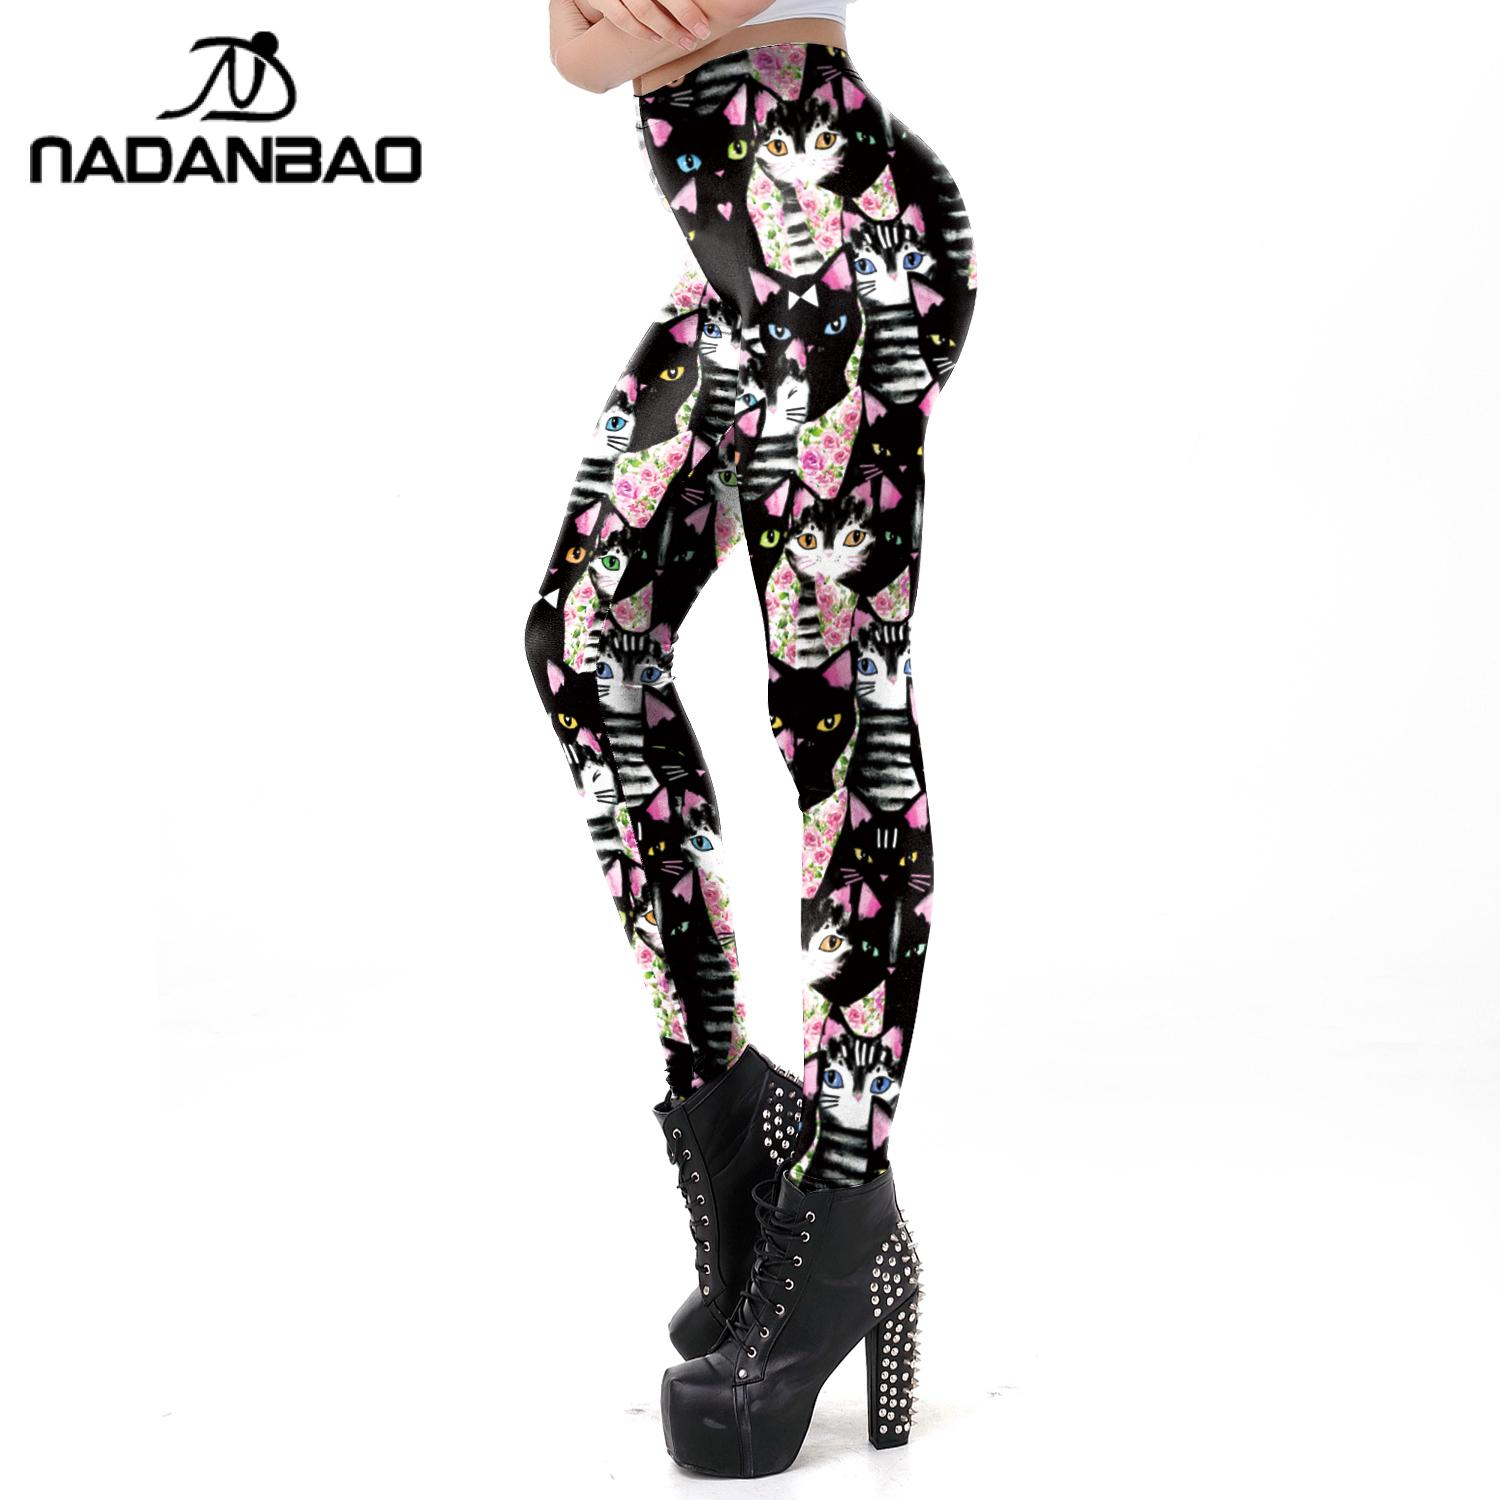 NADANBAO Cute Carton Leggings For Women Cat Fitness Pants Slim Lovely Leggins Workout Pants Female Outside Clothing Plus Size